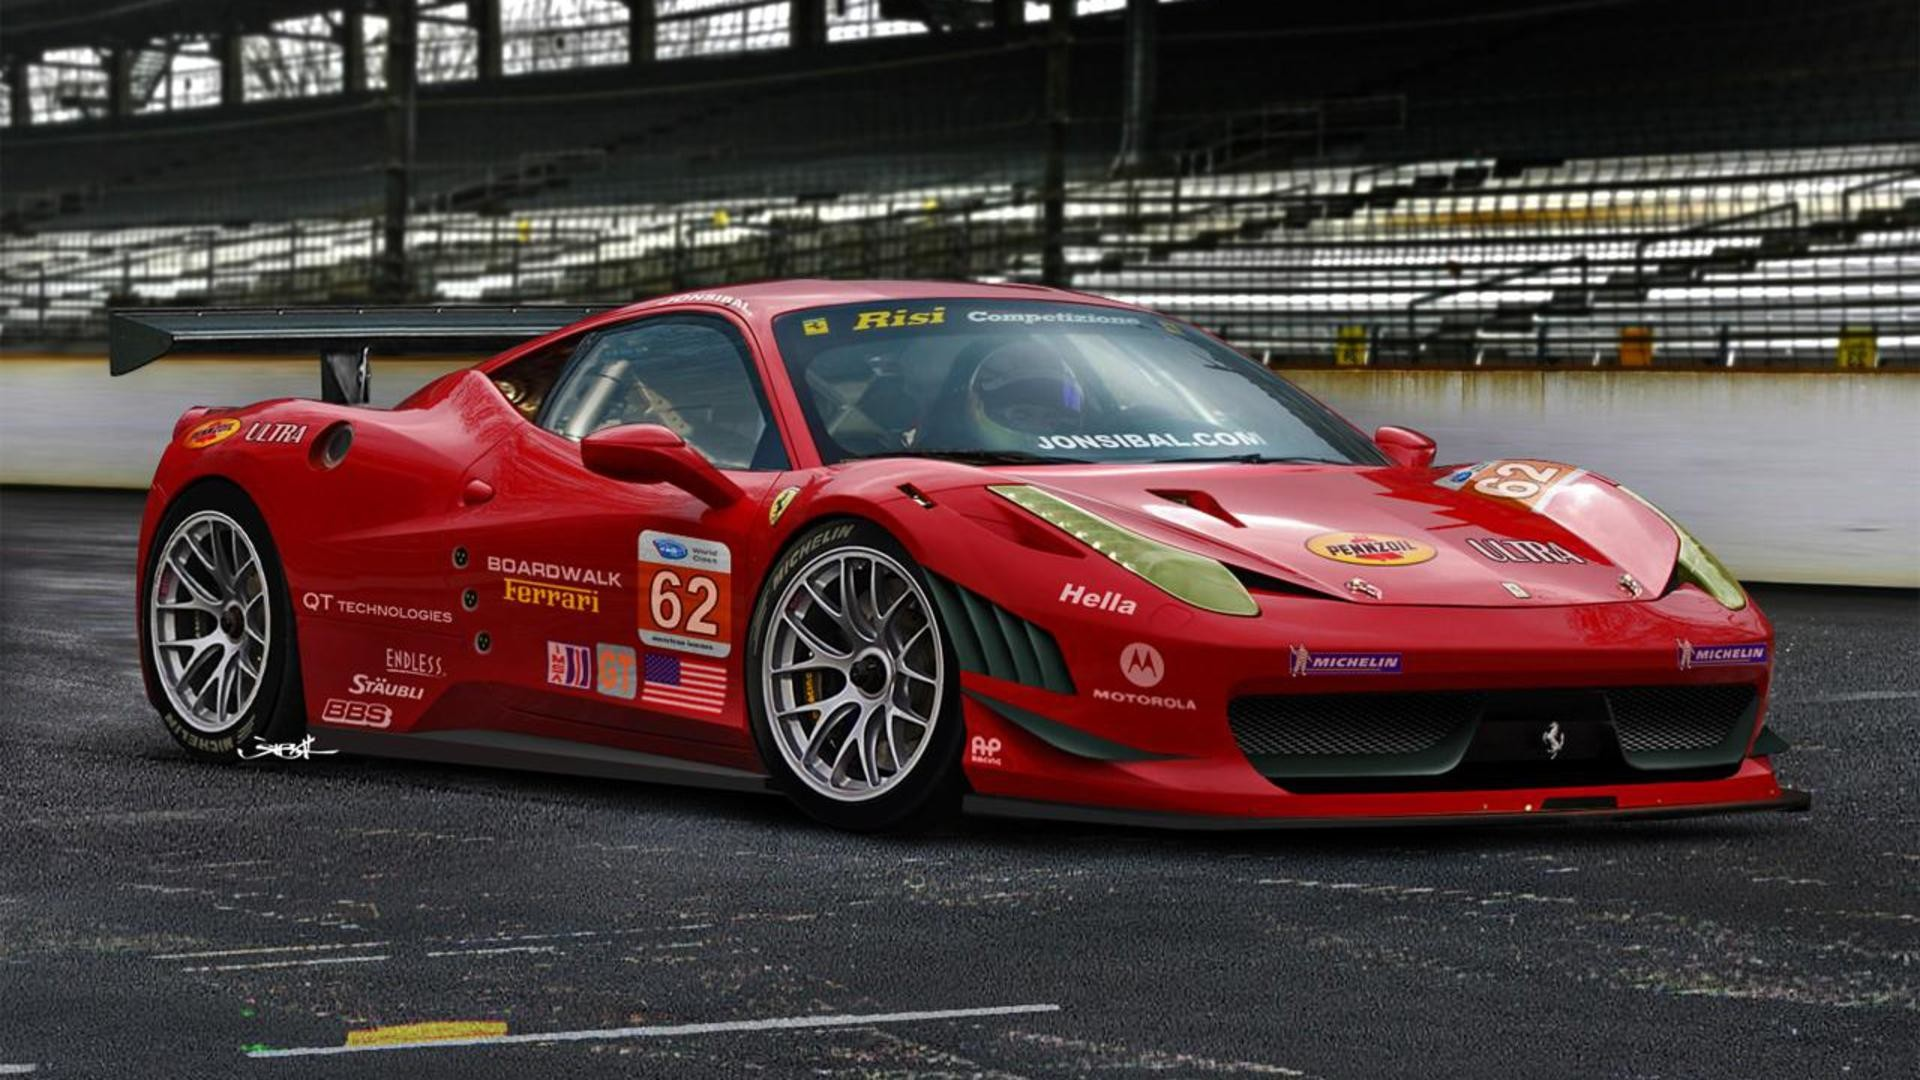 Res: 1920x1080, Race Car Wallpapers 17 - 1920 X 1080